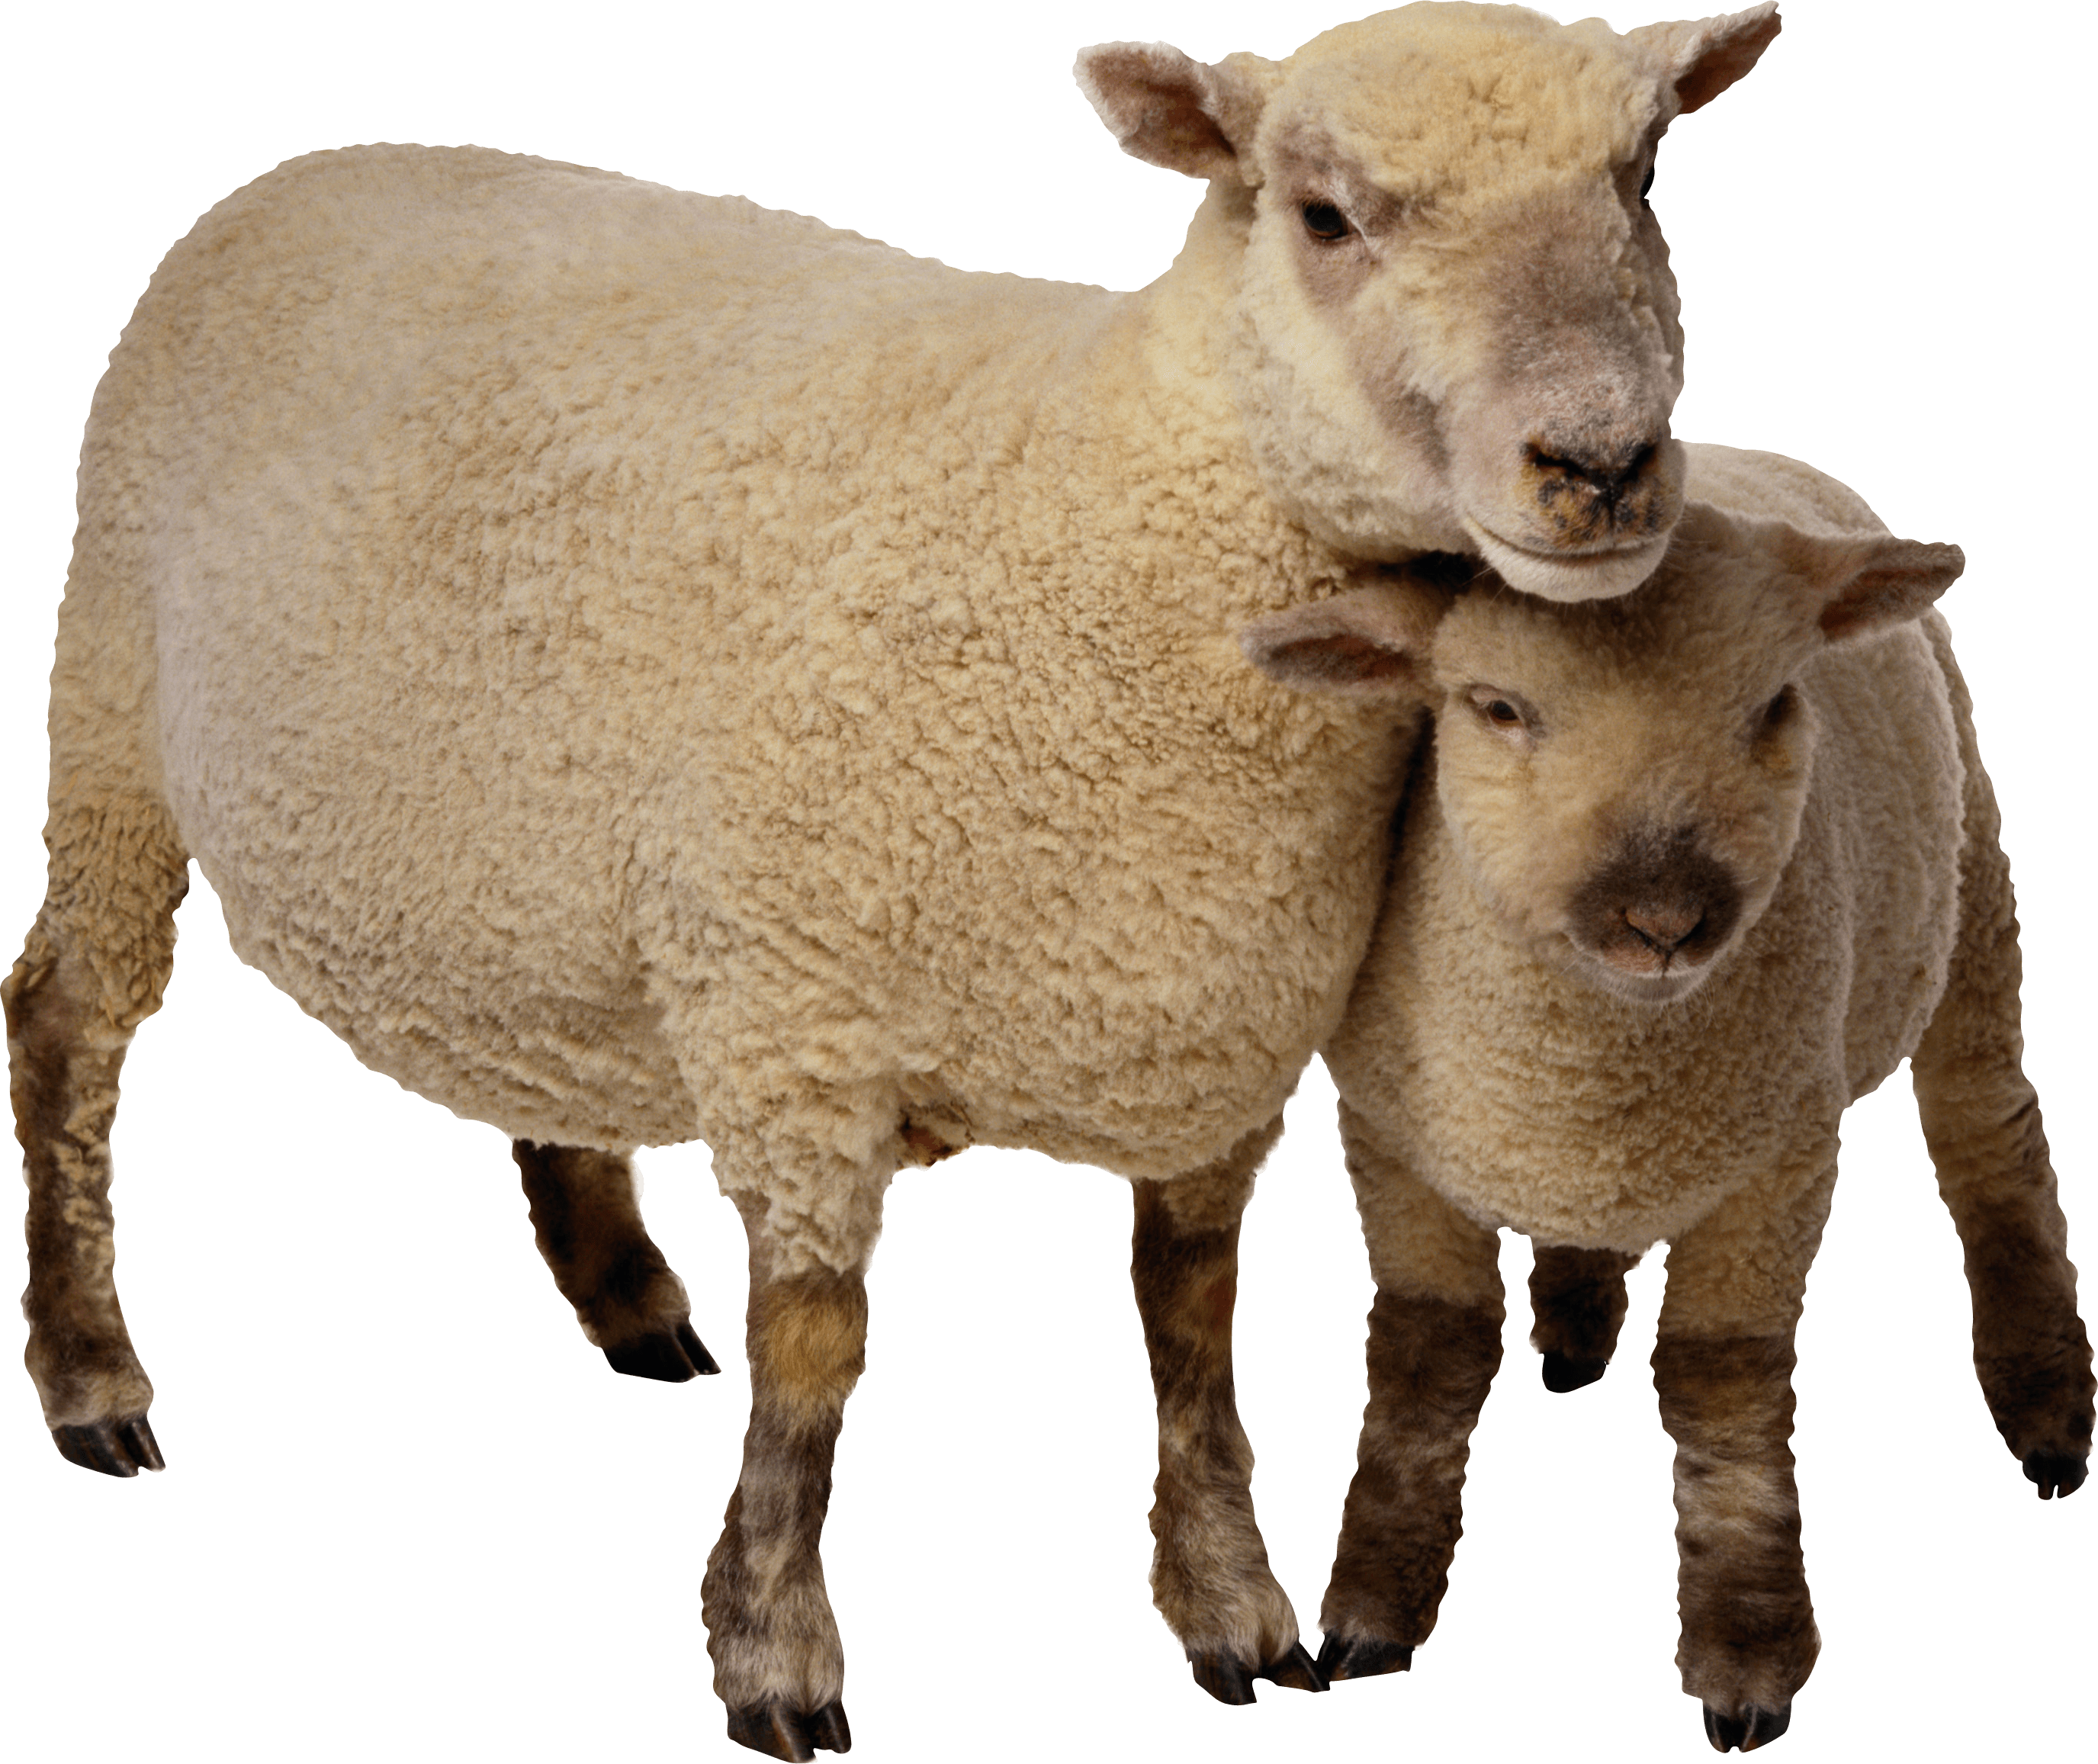 Sheep and baby transparent. Goat clipart mother goat